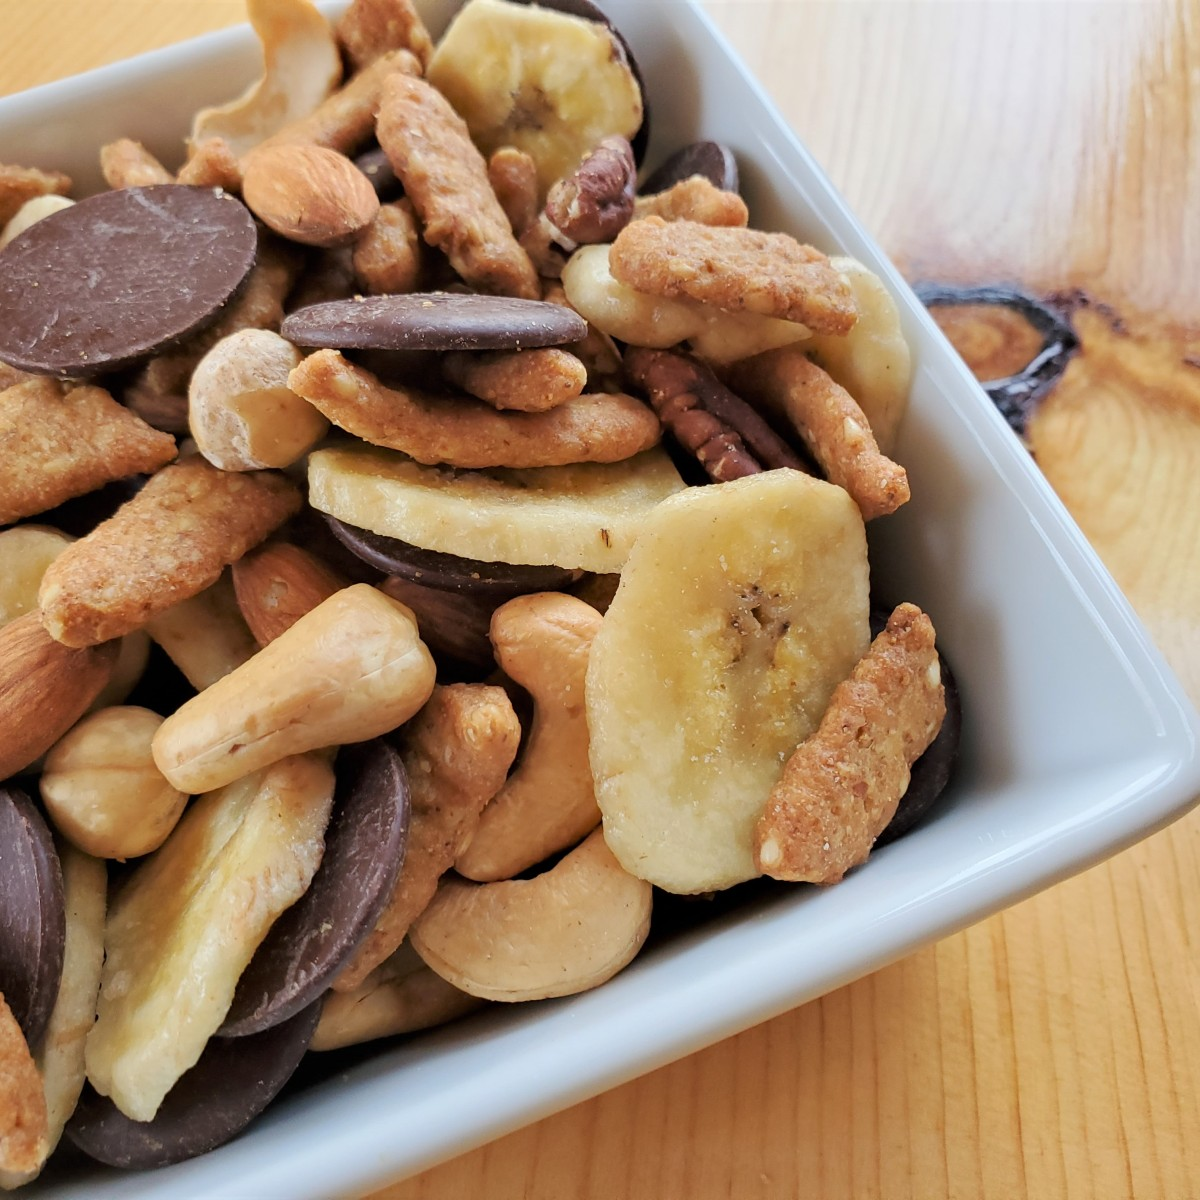 White square bowl on a wooden table filled with mixed ingredients. Brown sesame sticks, round, tellow banana chips, mixed variations of brown and beige nuts, and round smooth dark chocolate wafers fill the white dish.